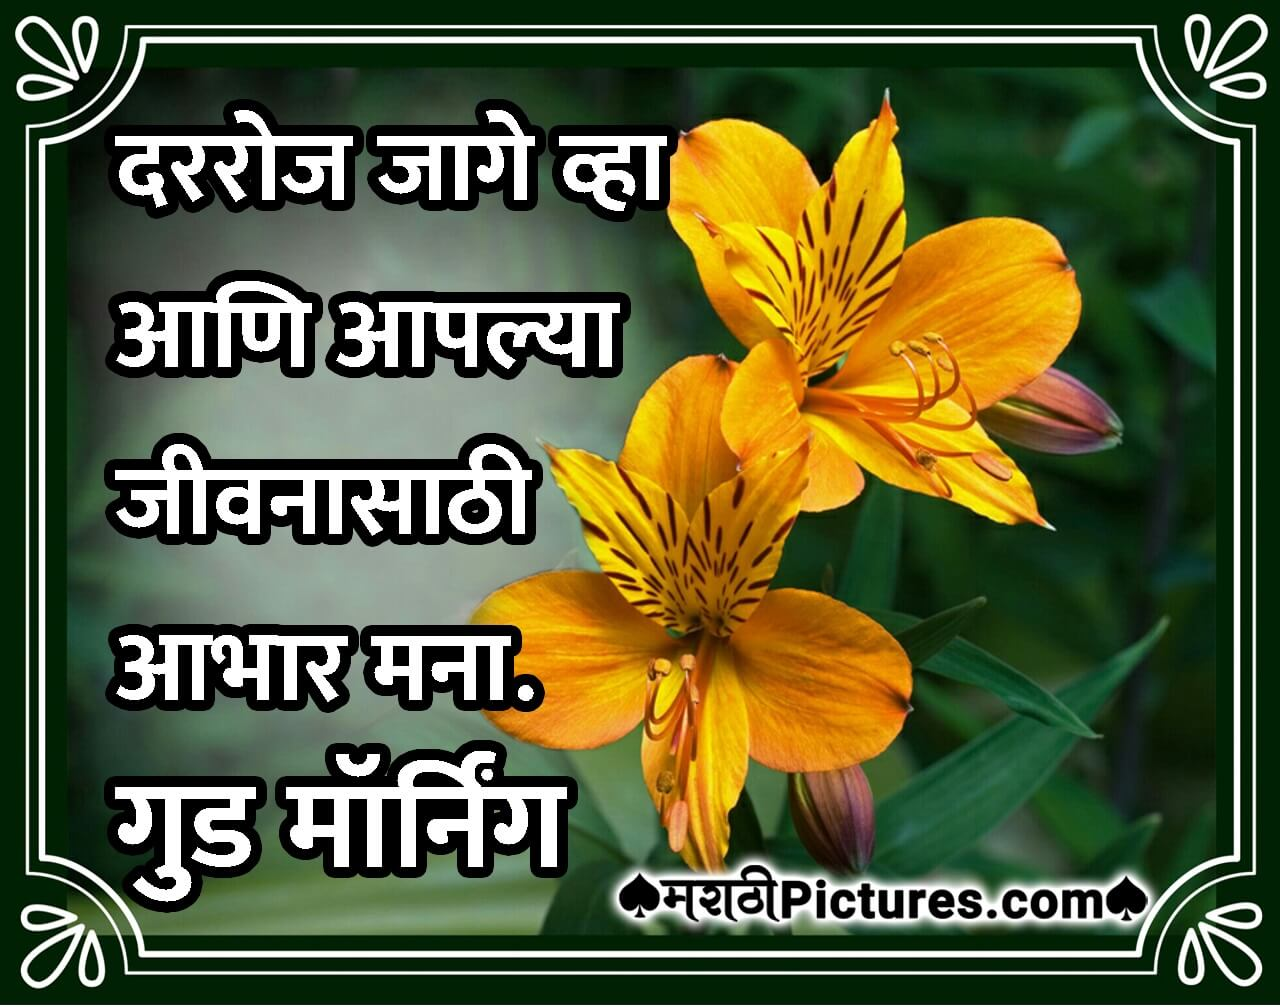 Free Printable Good Morning God Images In Marathi Hd Greetings Images